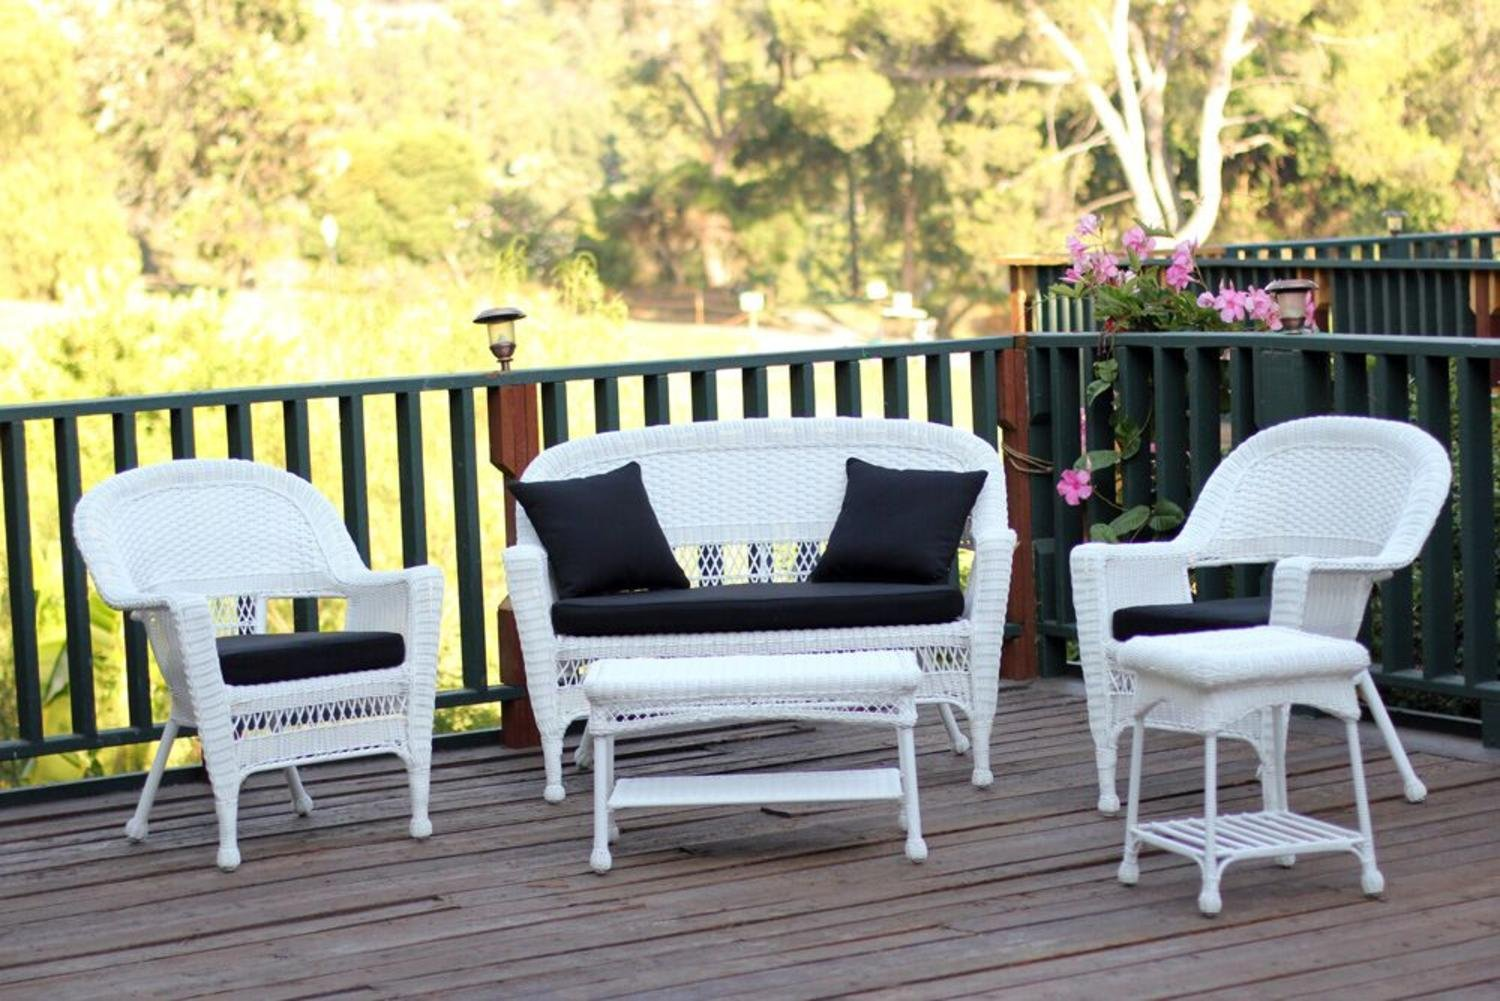 Amazon com 5 piece flynn white wicker patio chair loveseat table furniture set black cushions garden outdoor